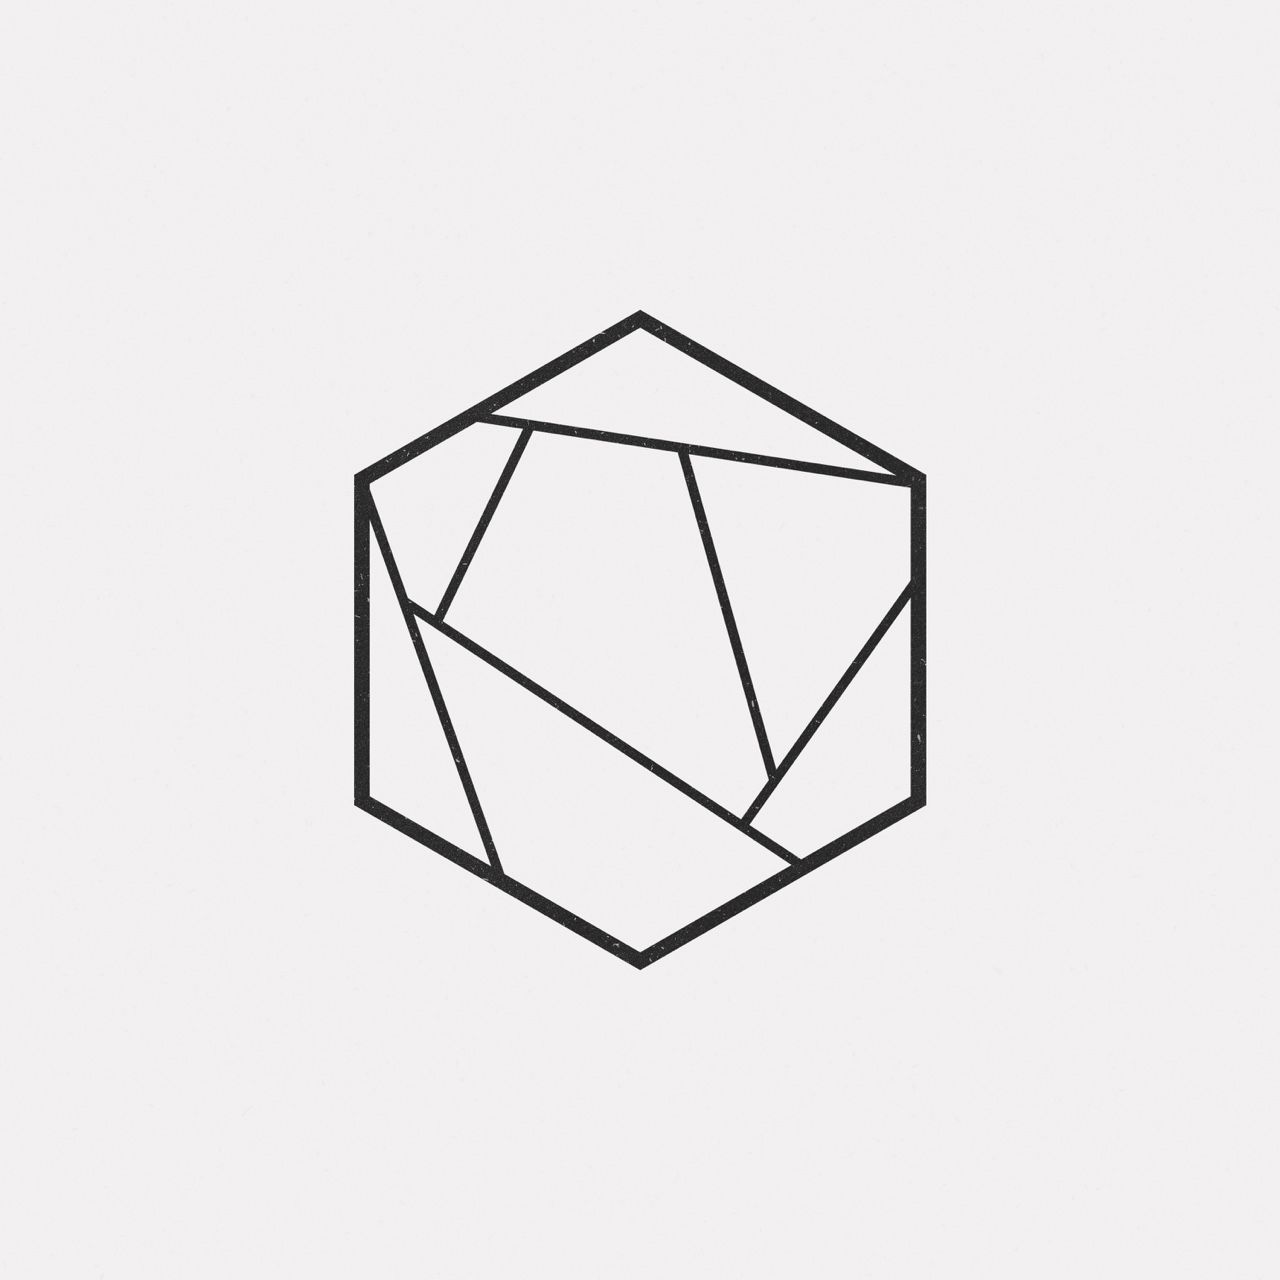 1280x1280 a new geometric design every day graphic design